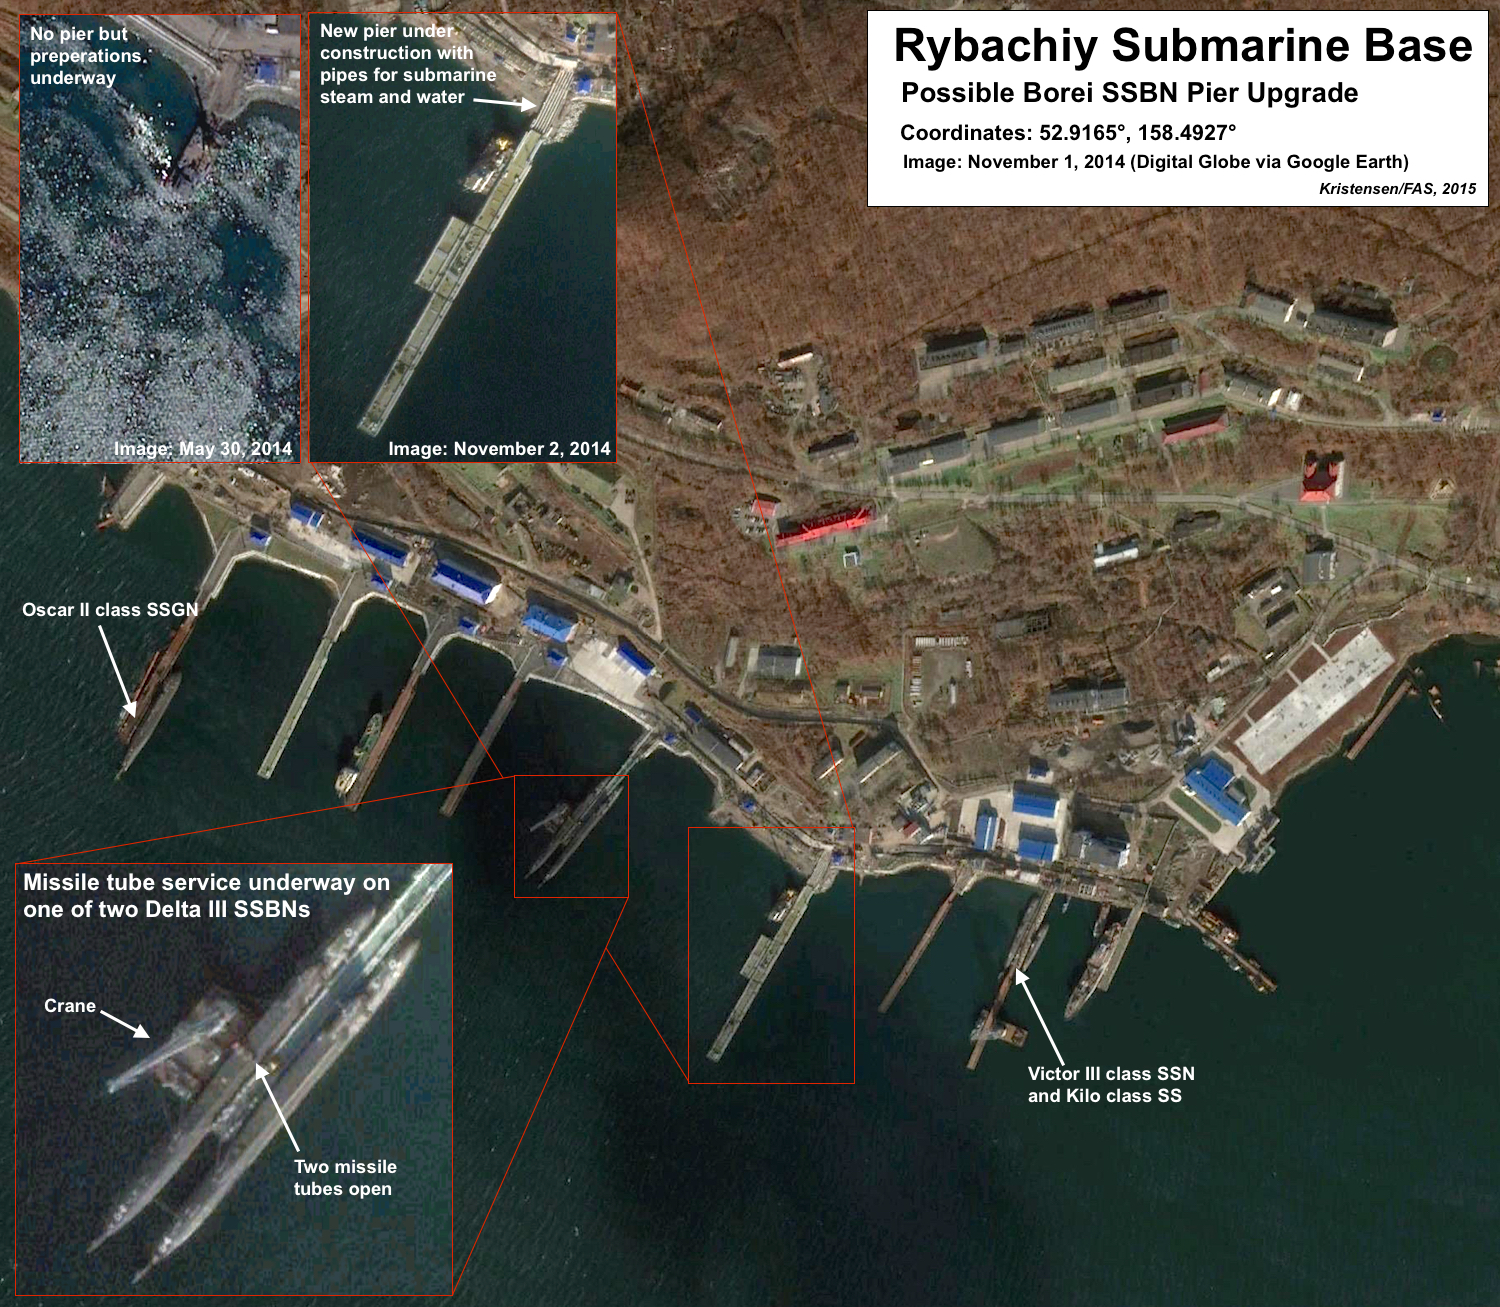 Upgrades at Rybachiy submarine base. Click to see full size image.